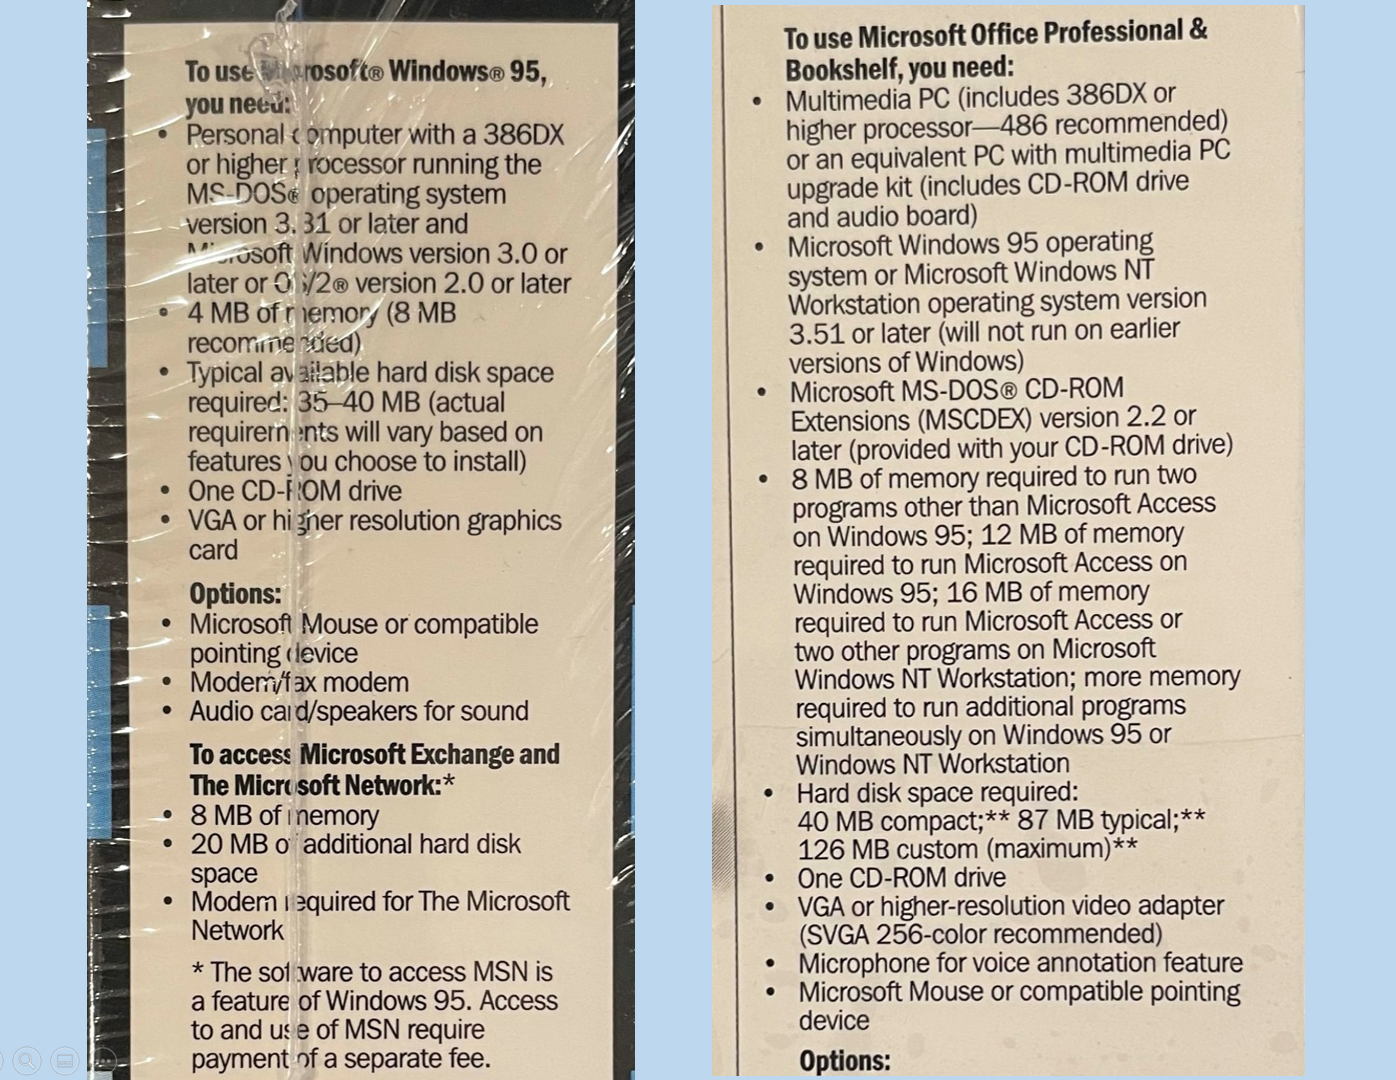 The final system requirements as photographed on the box. Windows says 4MB (8MB recommended) and Office says 8MB to run two programs other than access, 12MB required for Access, 16MB required to run access and two other programs.